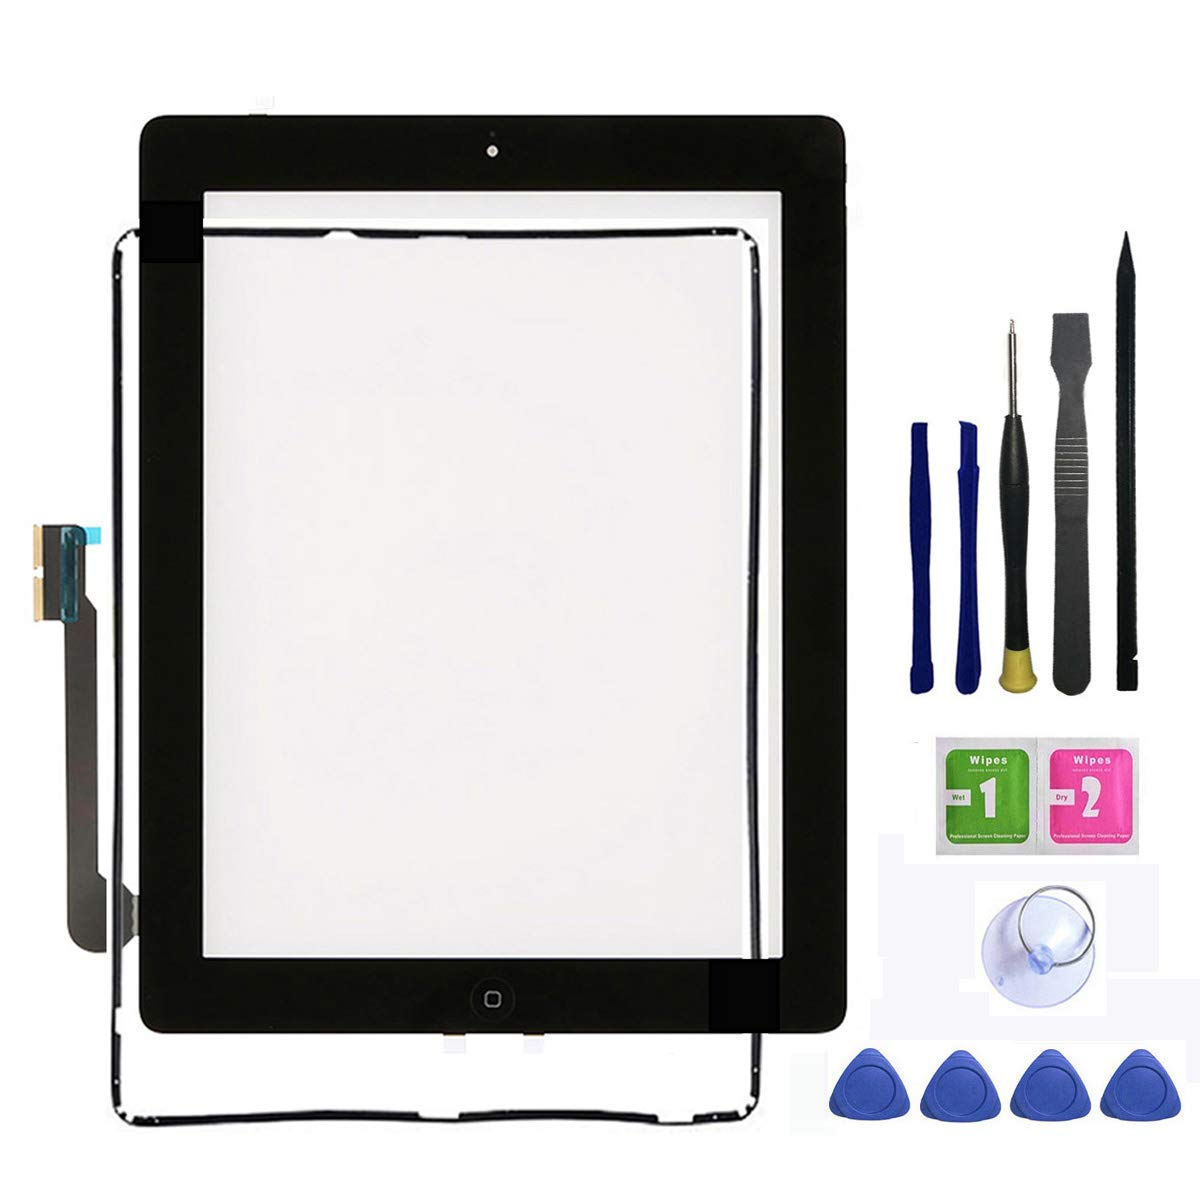 Ipad 3 Touch Screen Replacement,FeiyueTech New Black Digitize Screen Front Glass Assembly - Includes Home Button + Camera Holder +Frame Bezel+ PreInstalled Adhesive with Tools kit. (black)